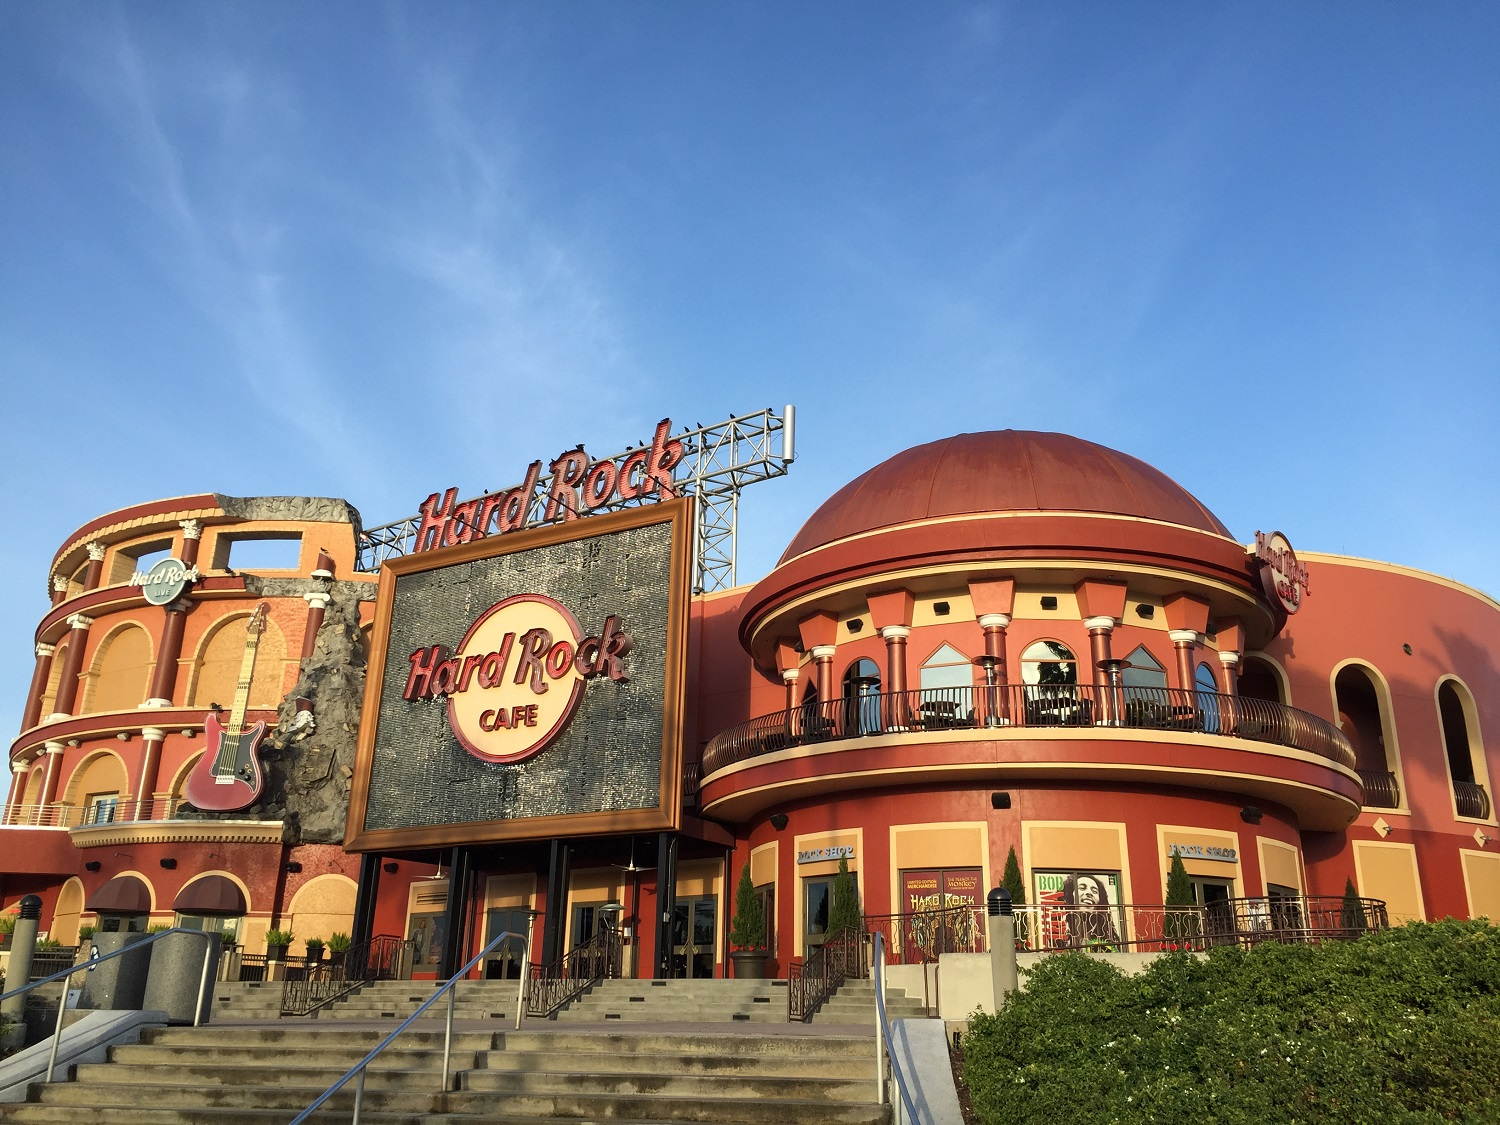 This is the world's largest Hard Rock Cafe.